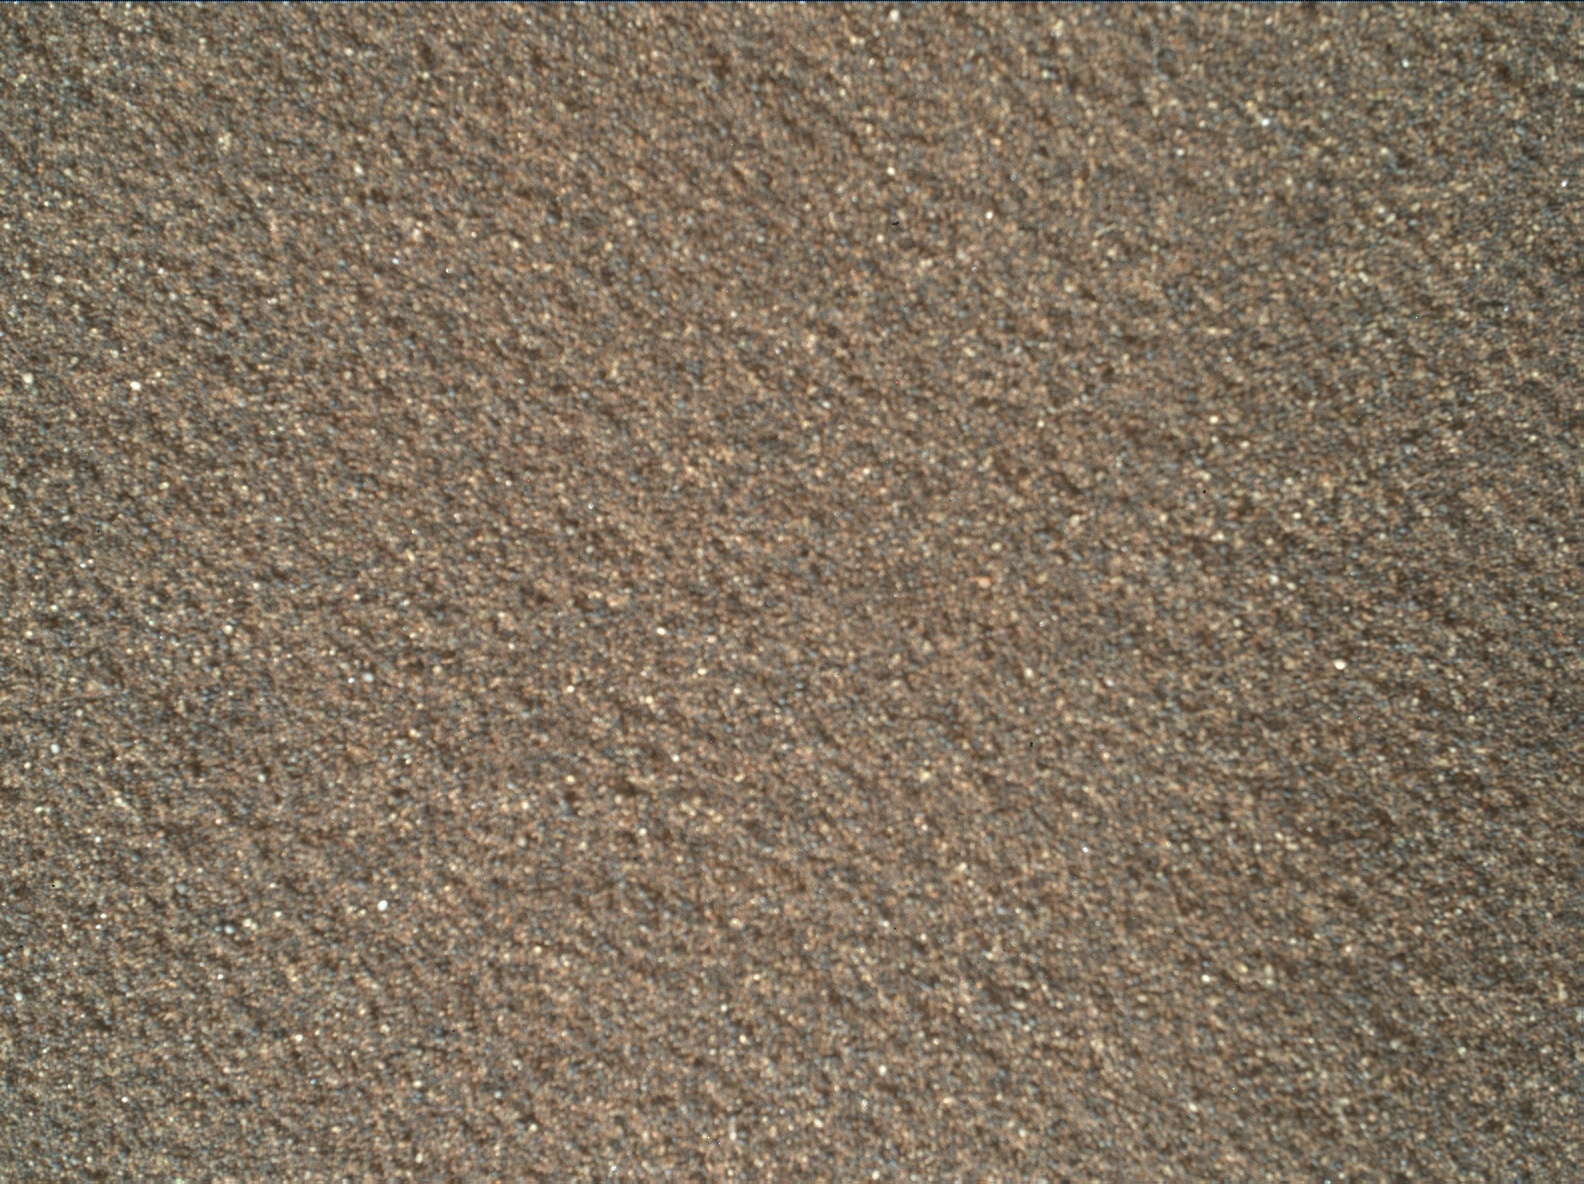 Nasa's Mars rover Curiosity acquired this image using its Mars Hand Lens Imager (MAHLI) on Sol 2025